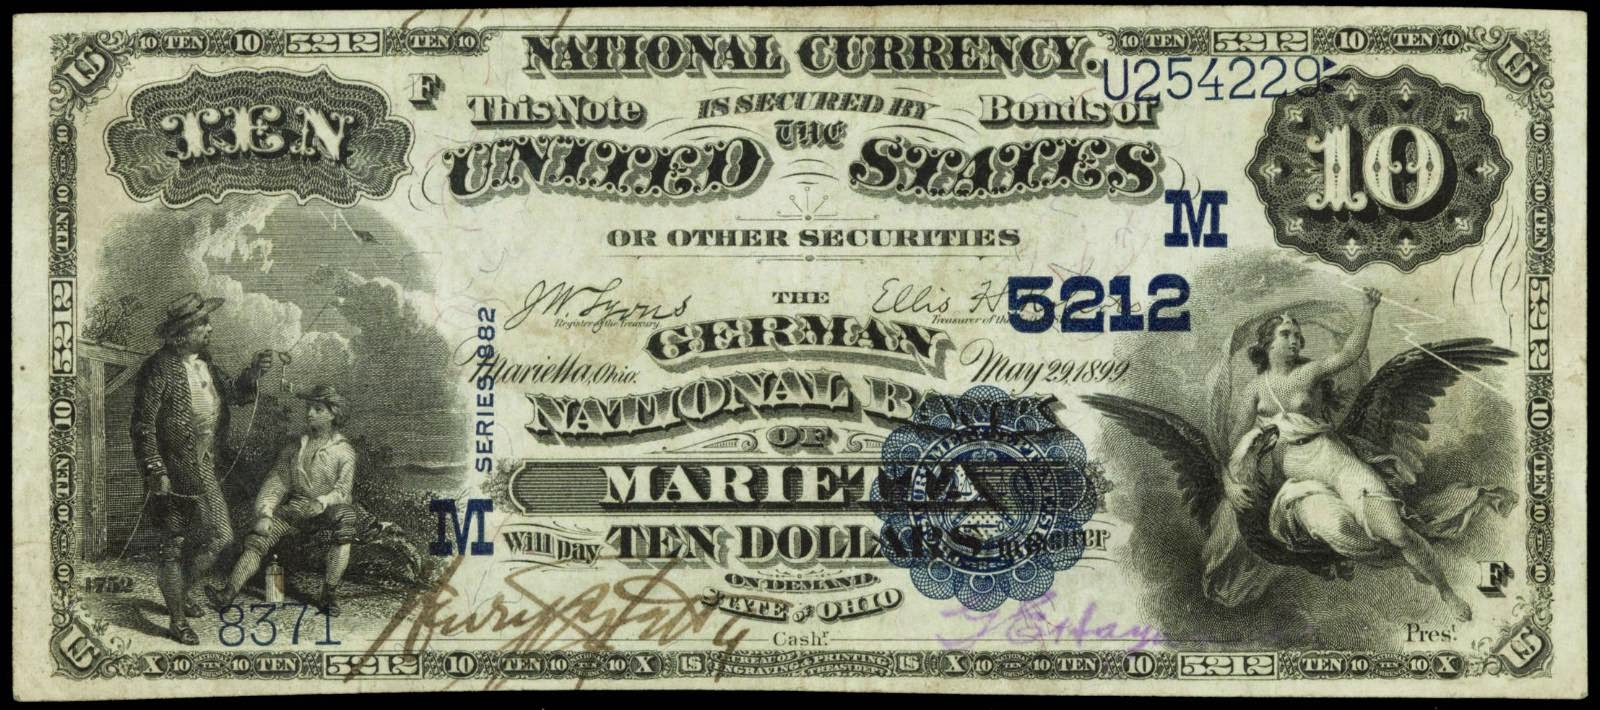 1882 10 Dollar National Currency Bank Note